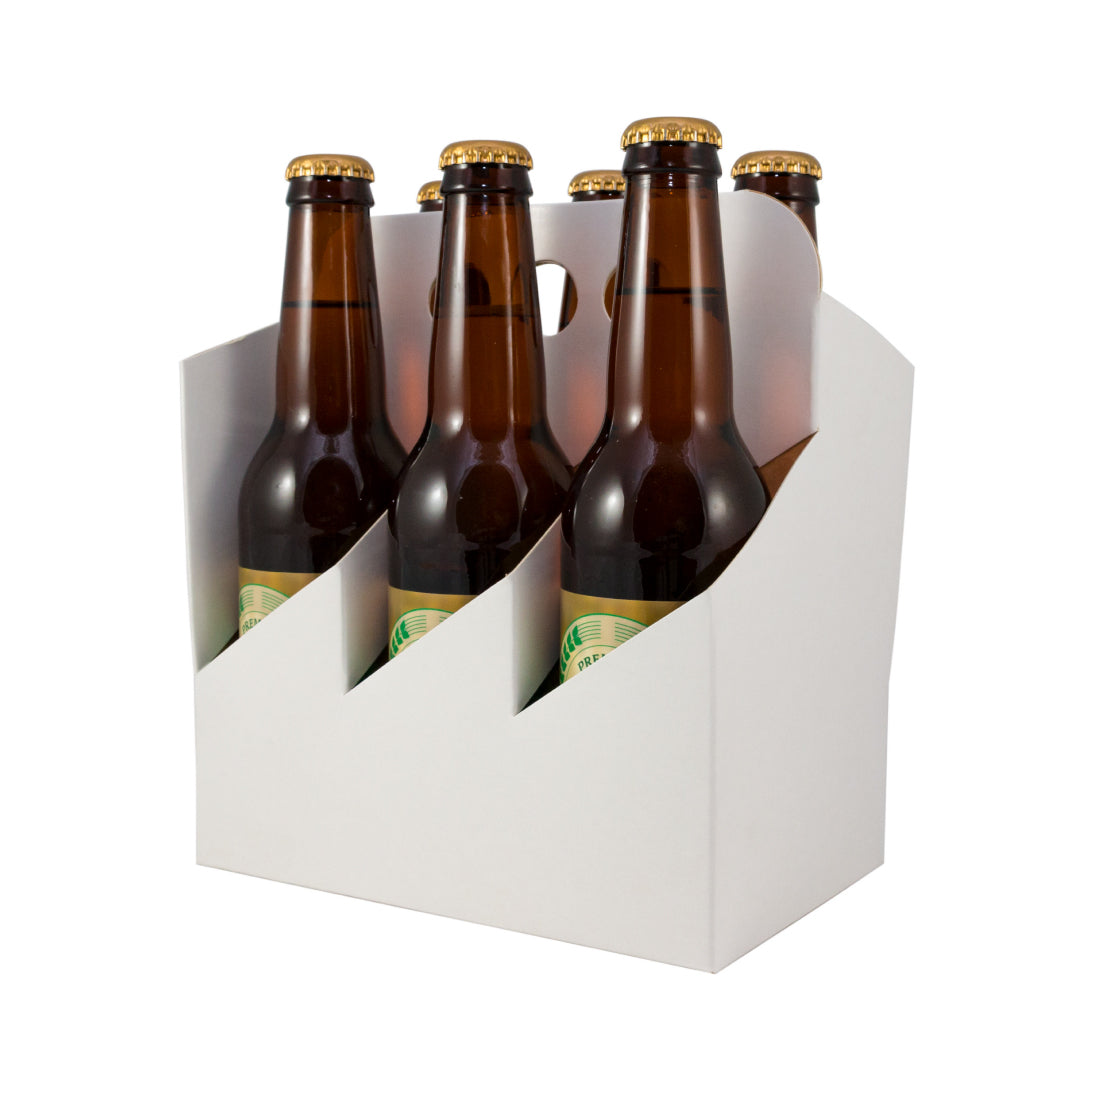 Craft Lager 4.0% - Case of 24